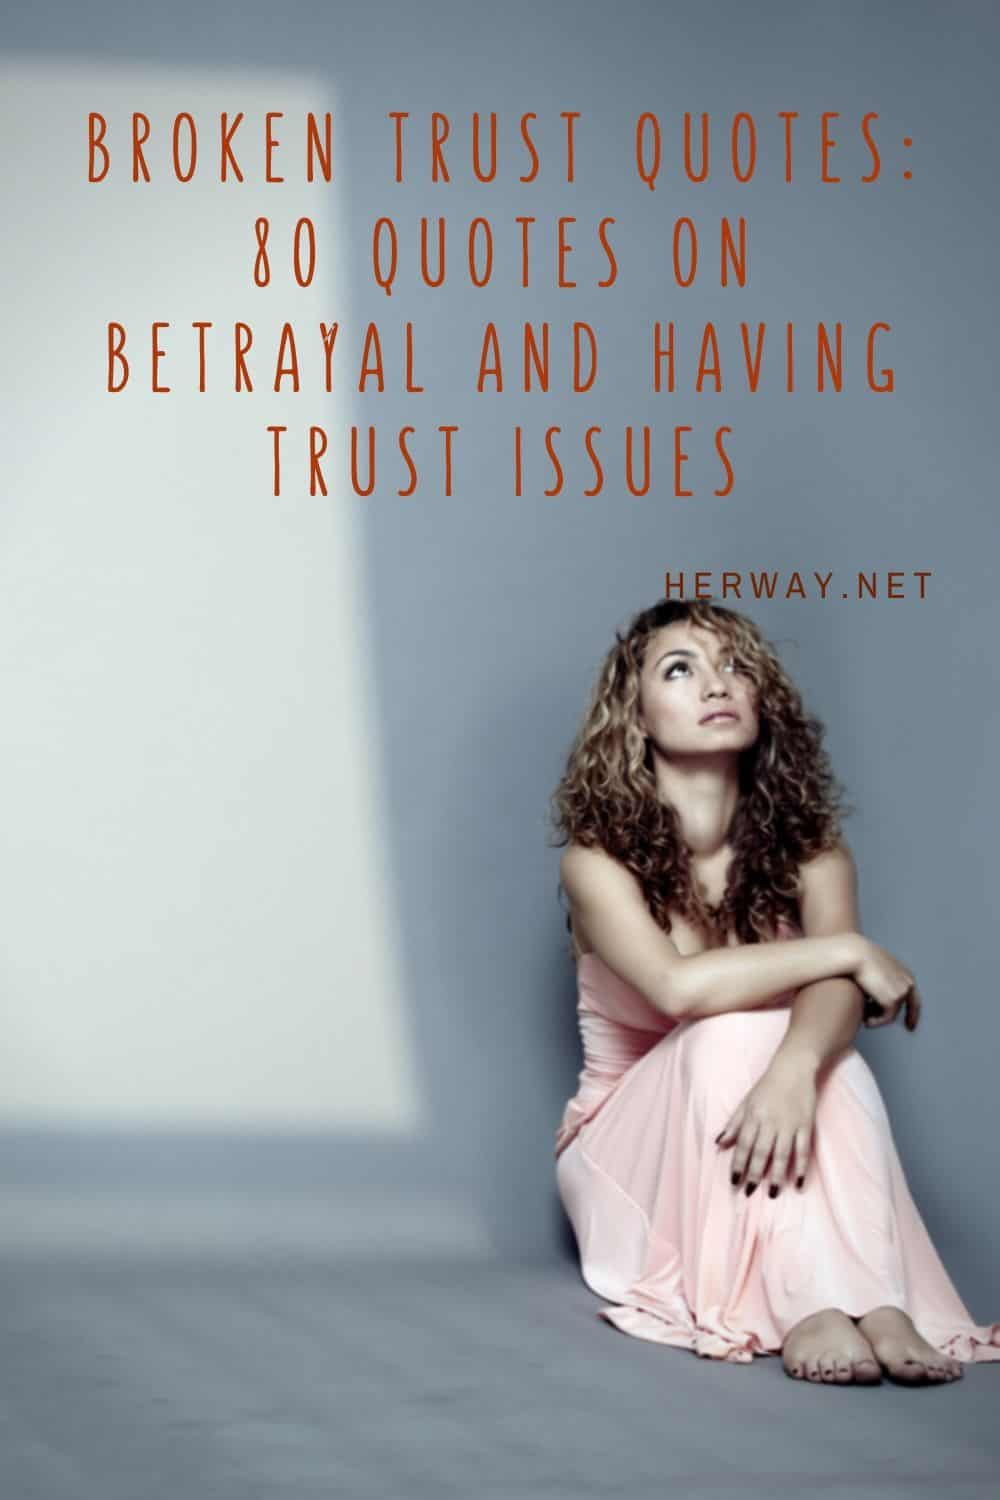 Broken Trust Quotes 80 Quotes On Betrayal And Having Trust Issues